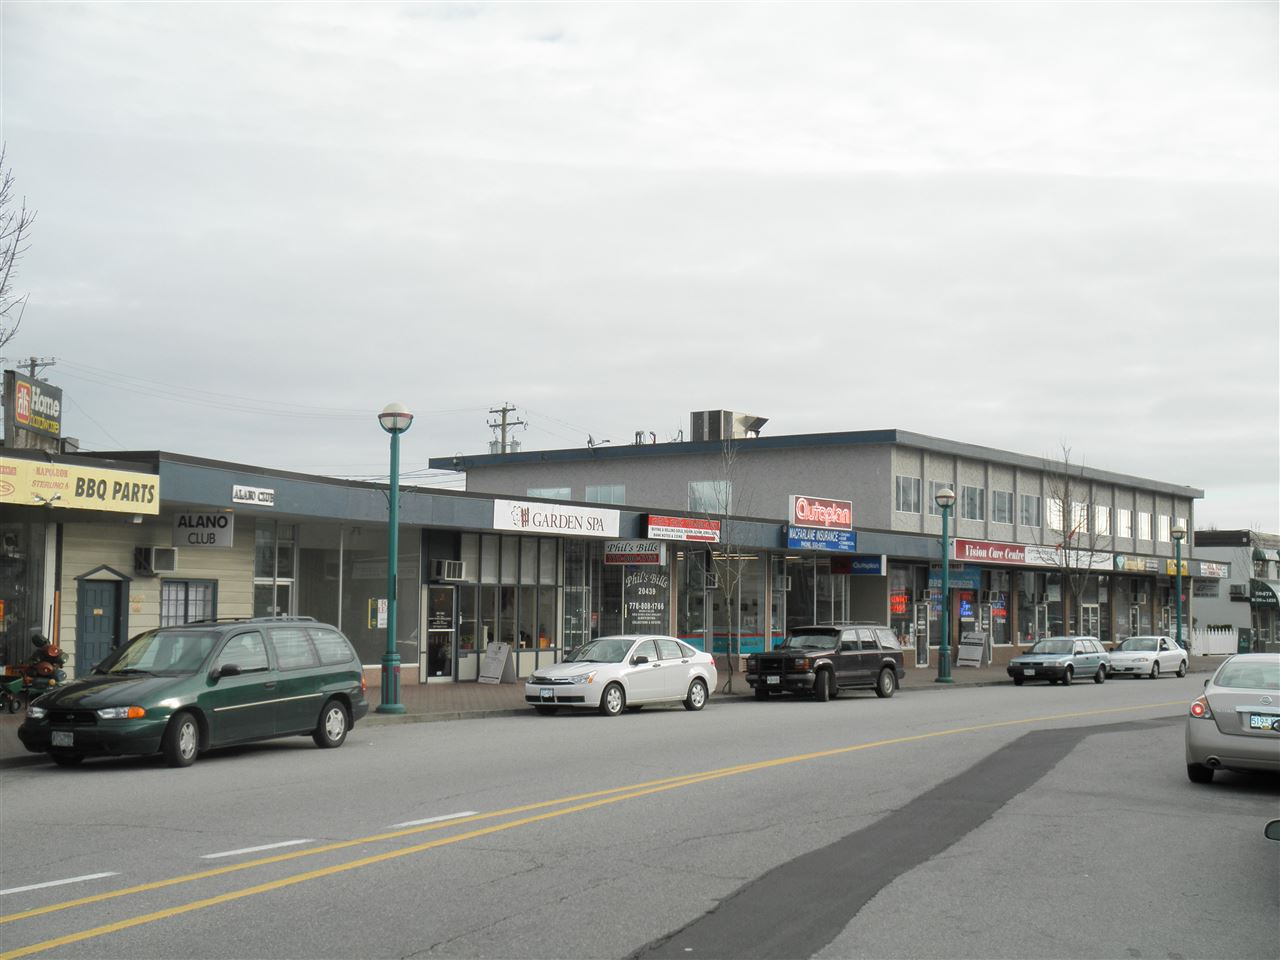 """FOR LEASE"", 290 SF second level office space For Lease in Langley City fronting Douglas Crescent. Surrounded by Commercial and Multifamily development. Zoned C1. Base Rent at $12/sf/annum and  additional rent  at  $8.97/sf/annum. Additional rent includes Hydro & A/C."